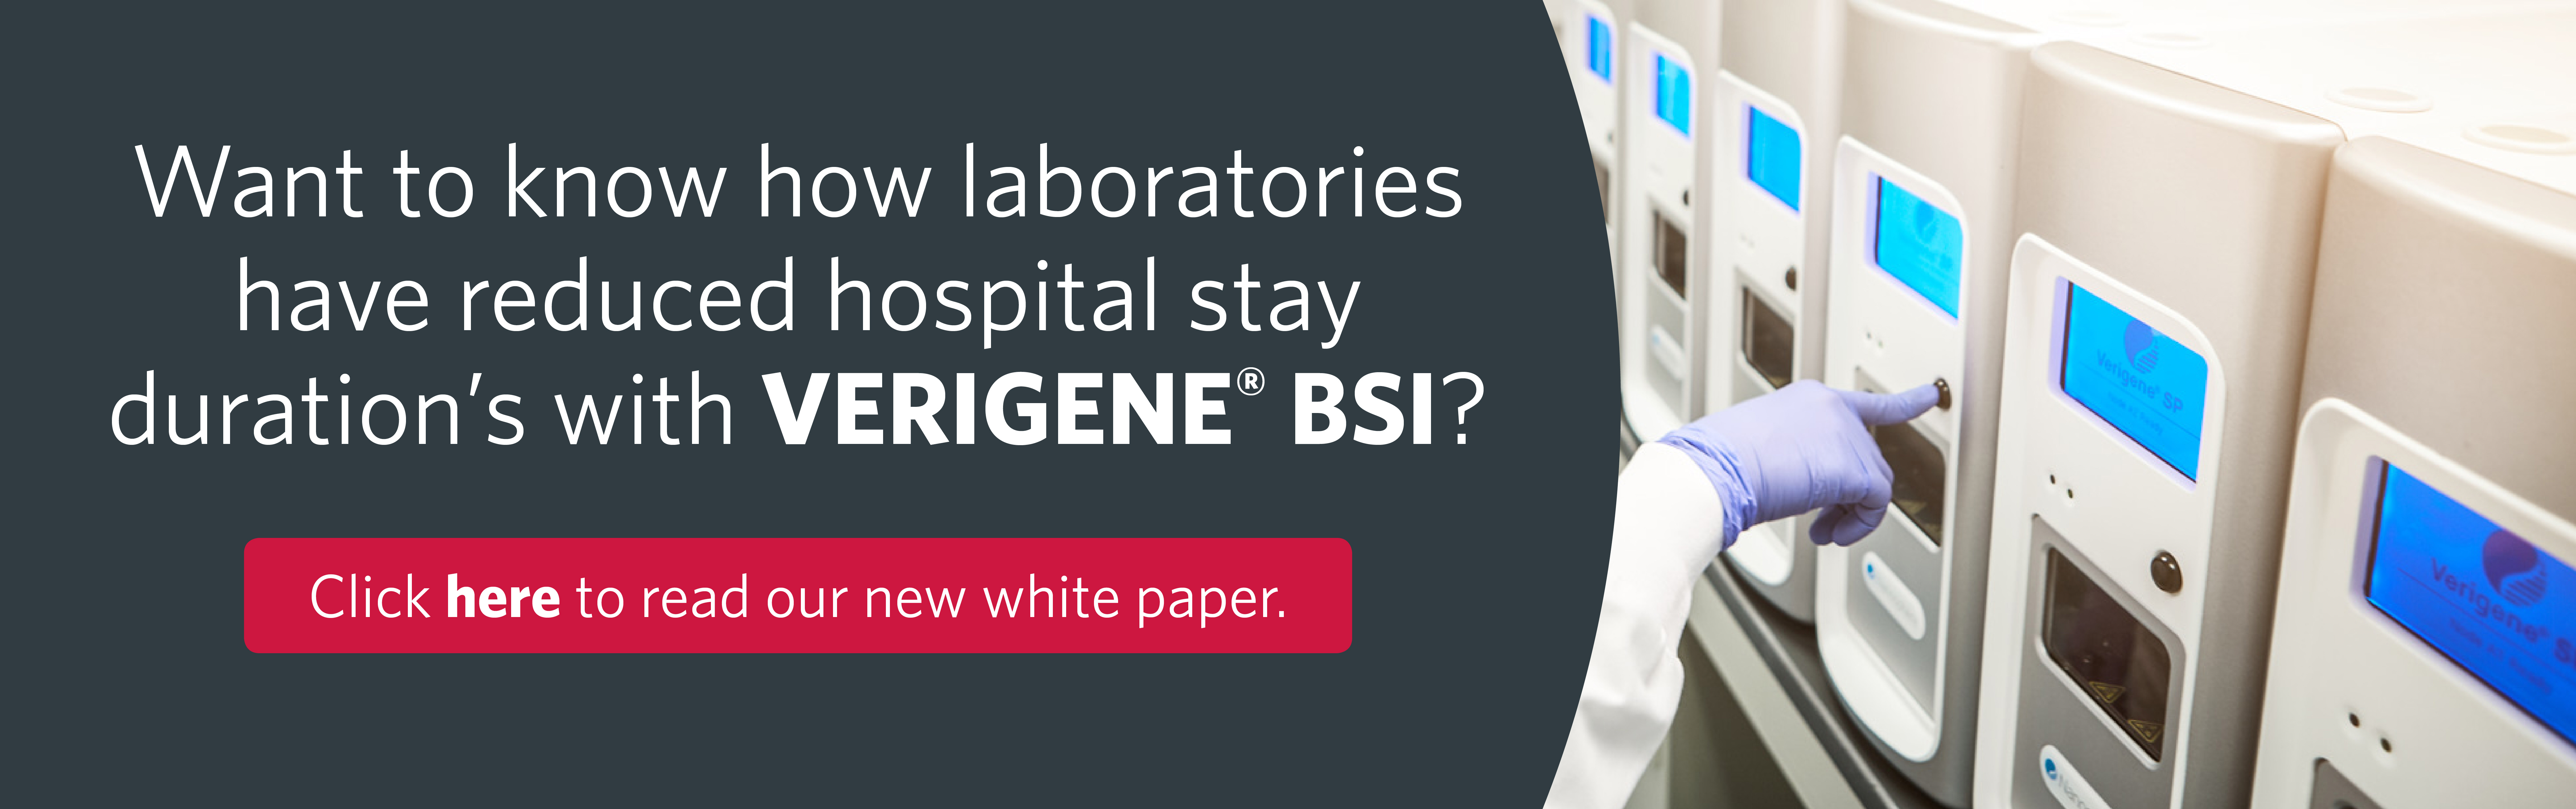 Want to know how laboratories have reduced hospital stay duration's with VERIGENE BSI?